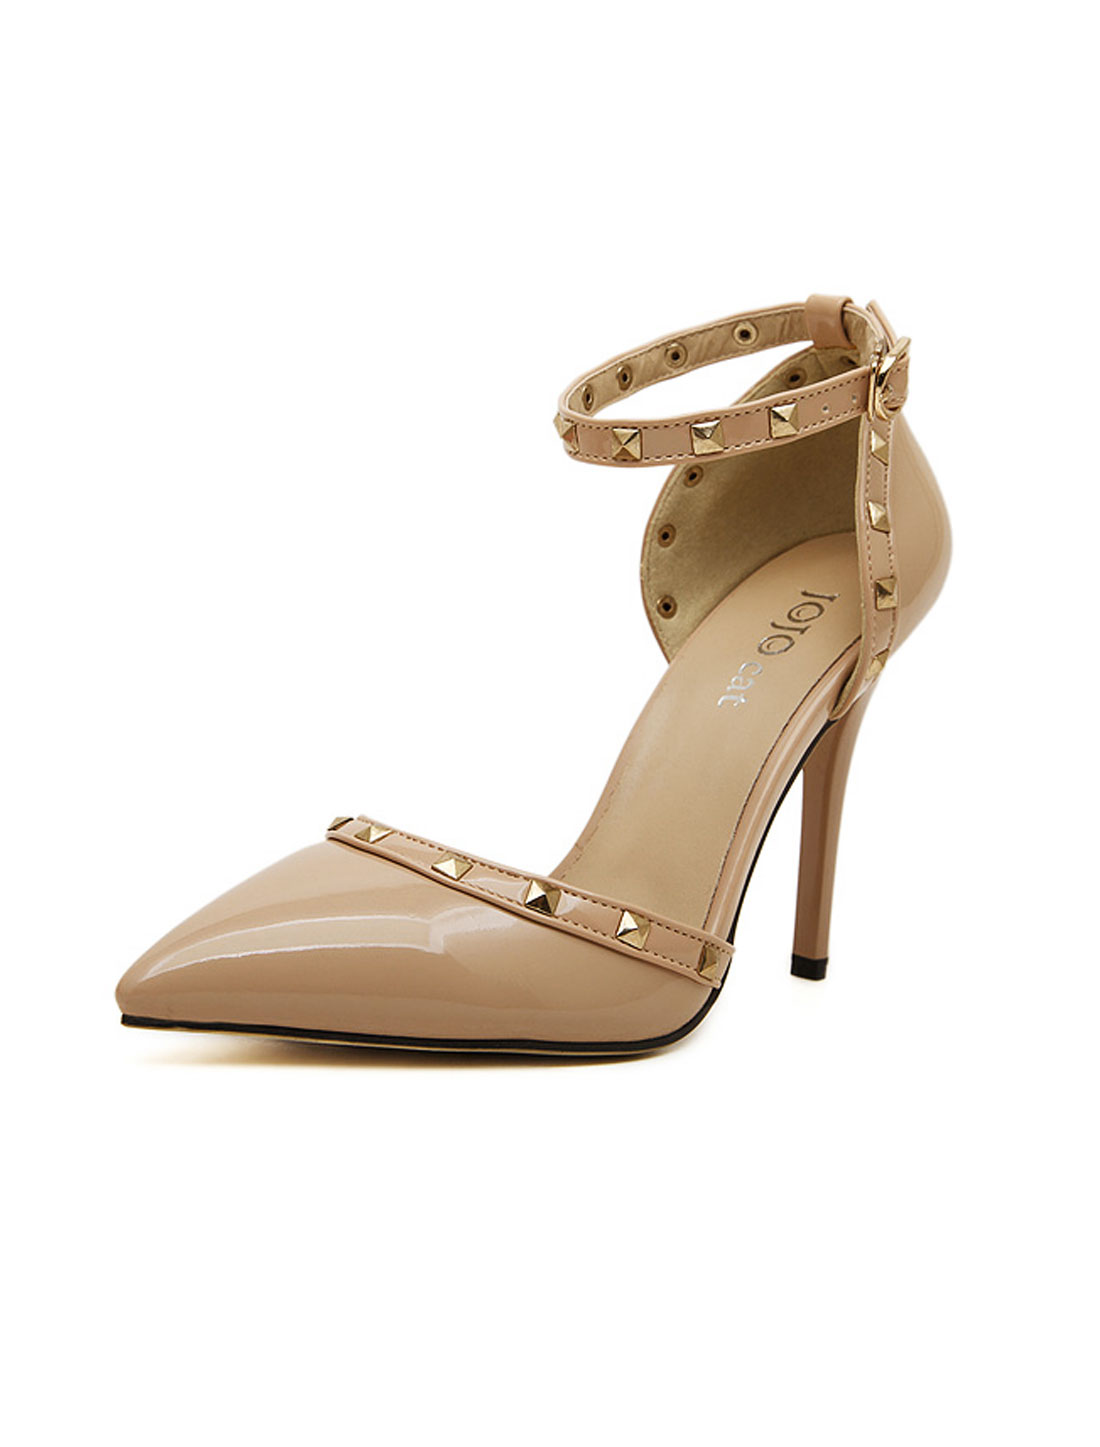 Lady Rivet Decor Contrast Color Pointed Toe High Heels Apricot US 7.5